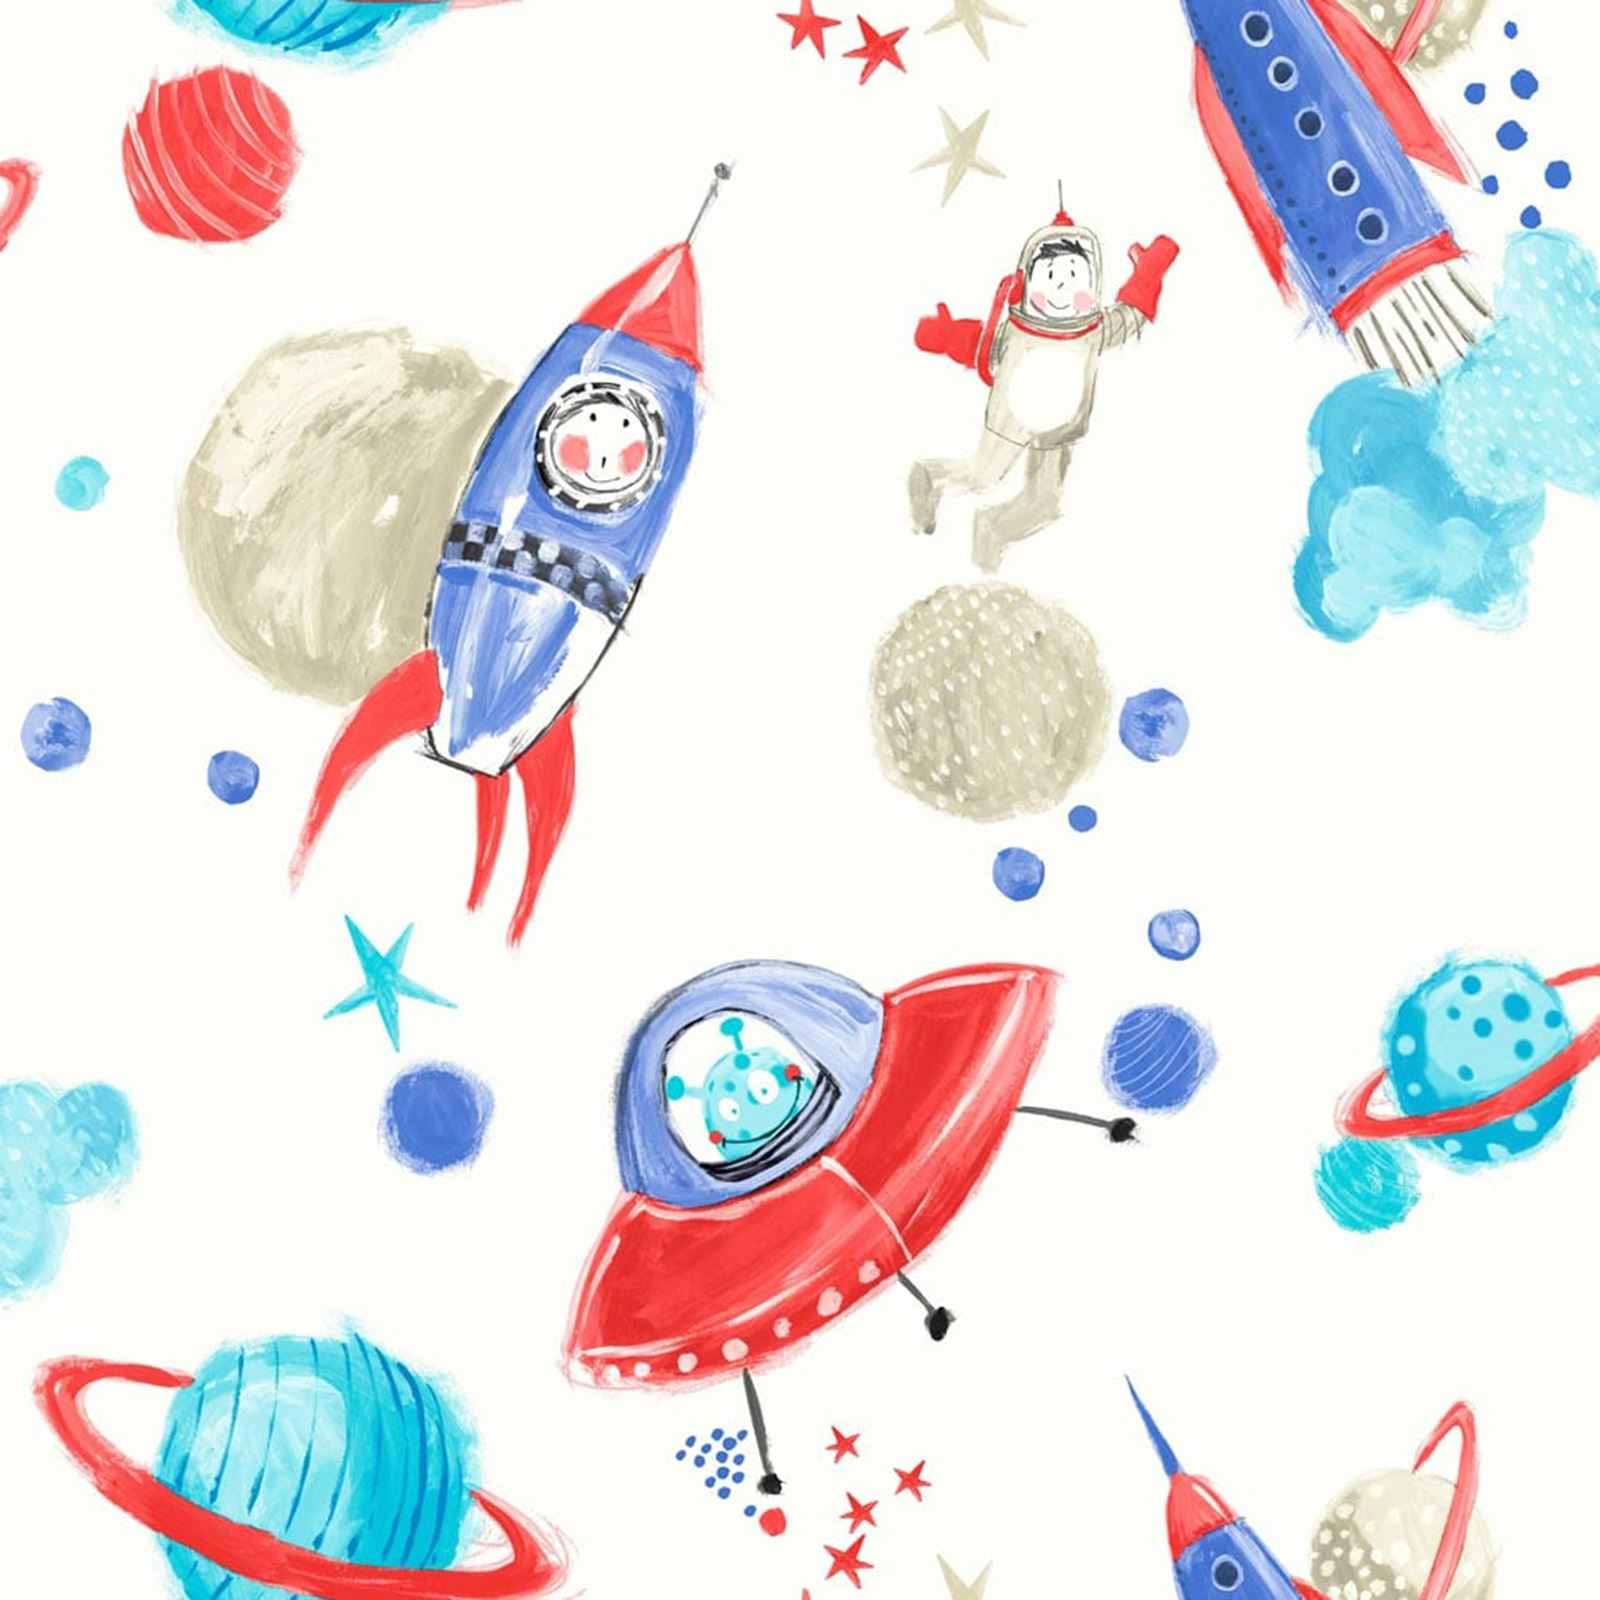 Arthouse Starship Star Pattern Space Man Rocket Glitter Childrens